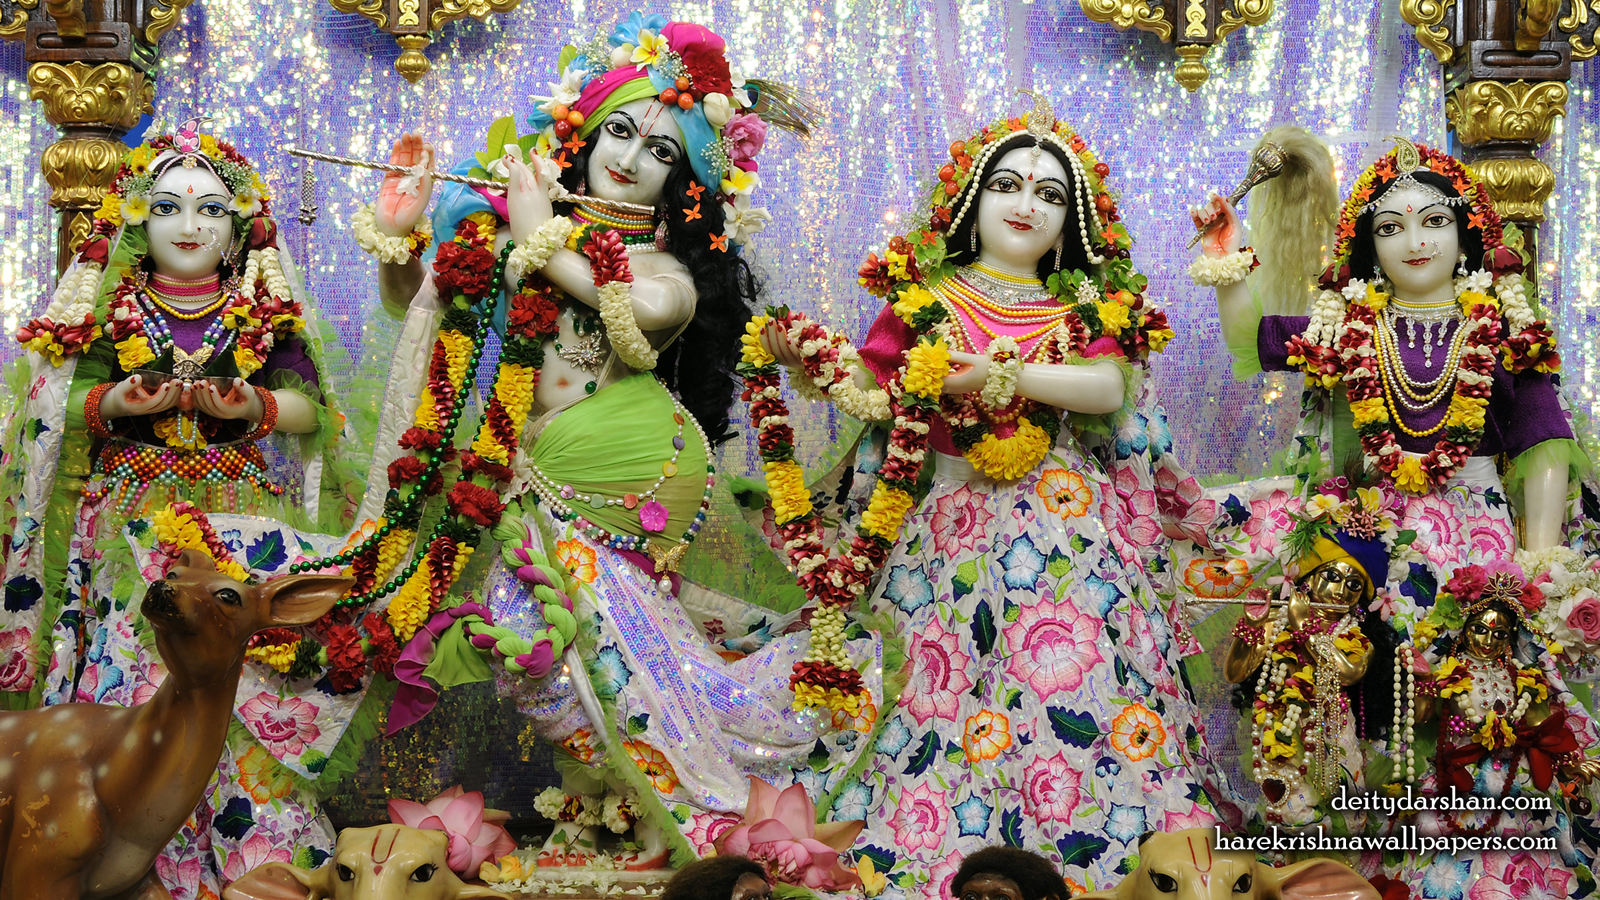 Sri Sri Radha Gopinath Lalita Vishakha Wallpaper (072) Size 1600x900 Download